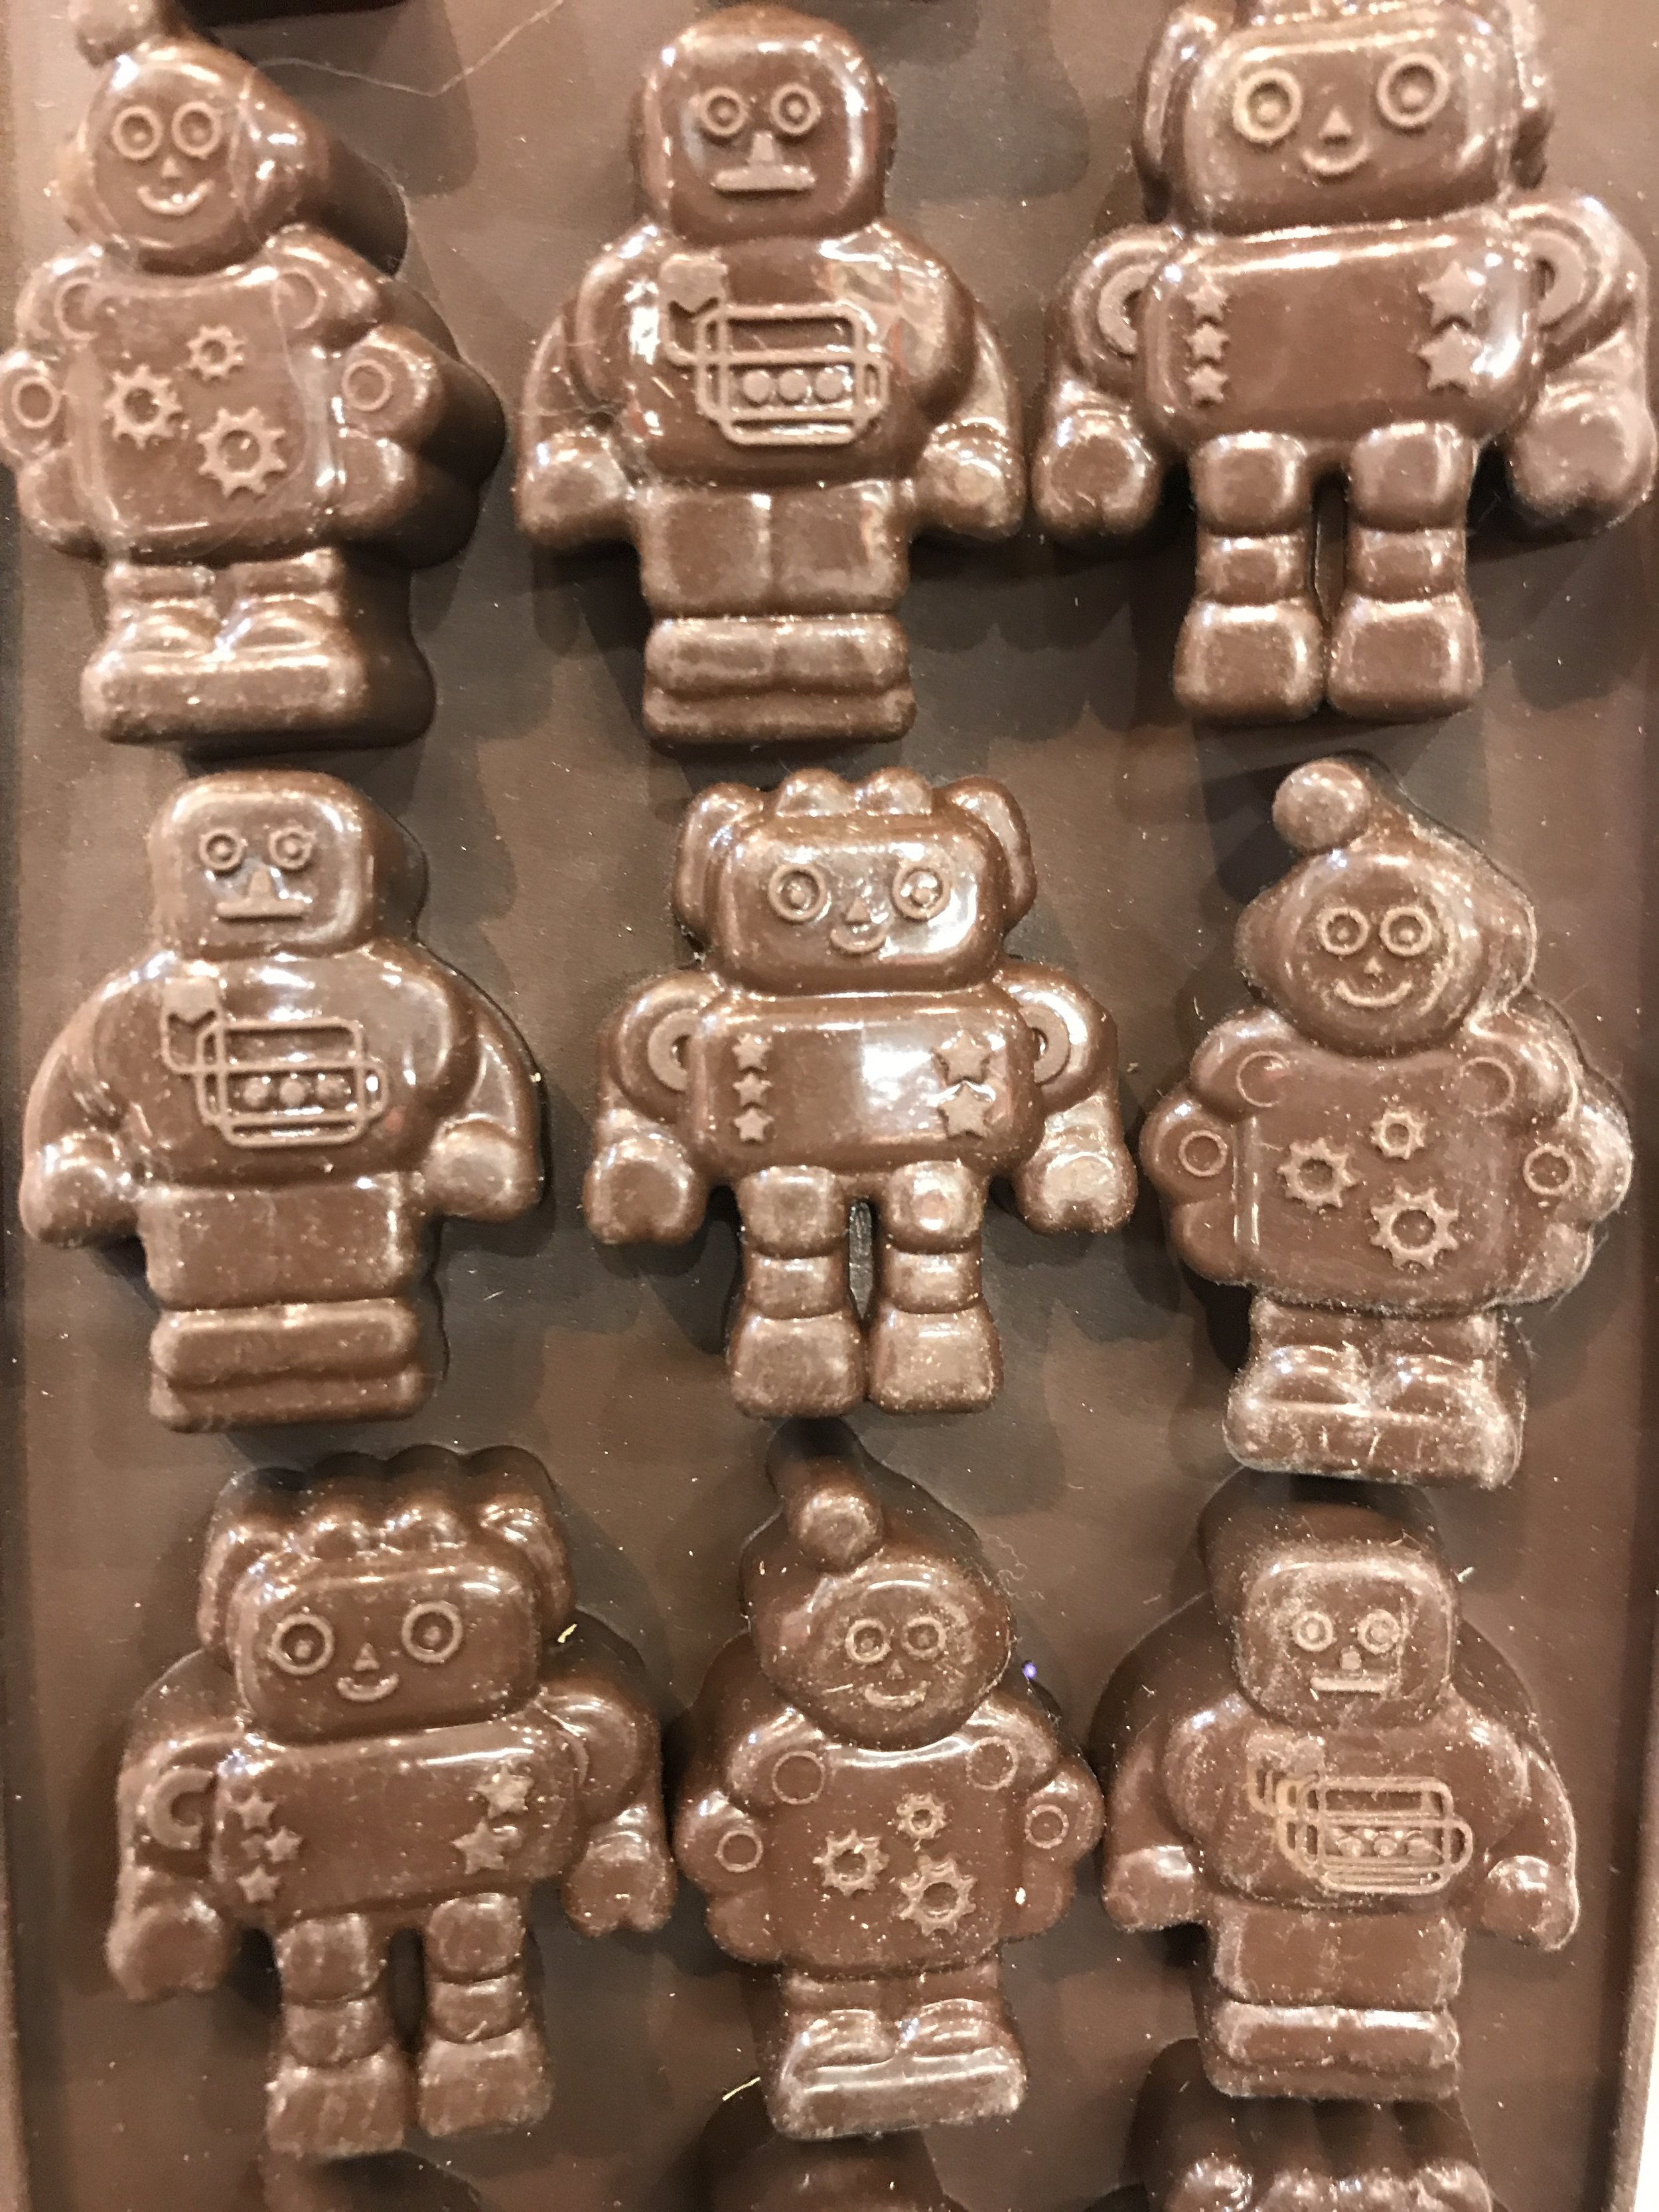 CHOCOLATE MOLDS: Literally soft robots! It is a silky textured plastic I think, kind of like a silicone. It retains shape, but has a floppy quality.